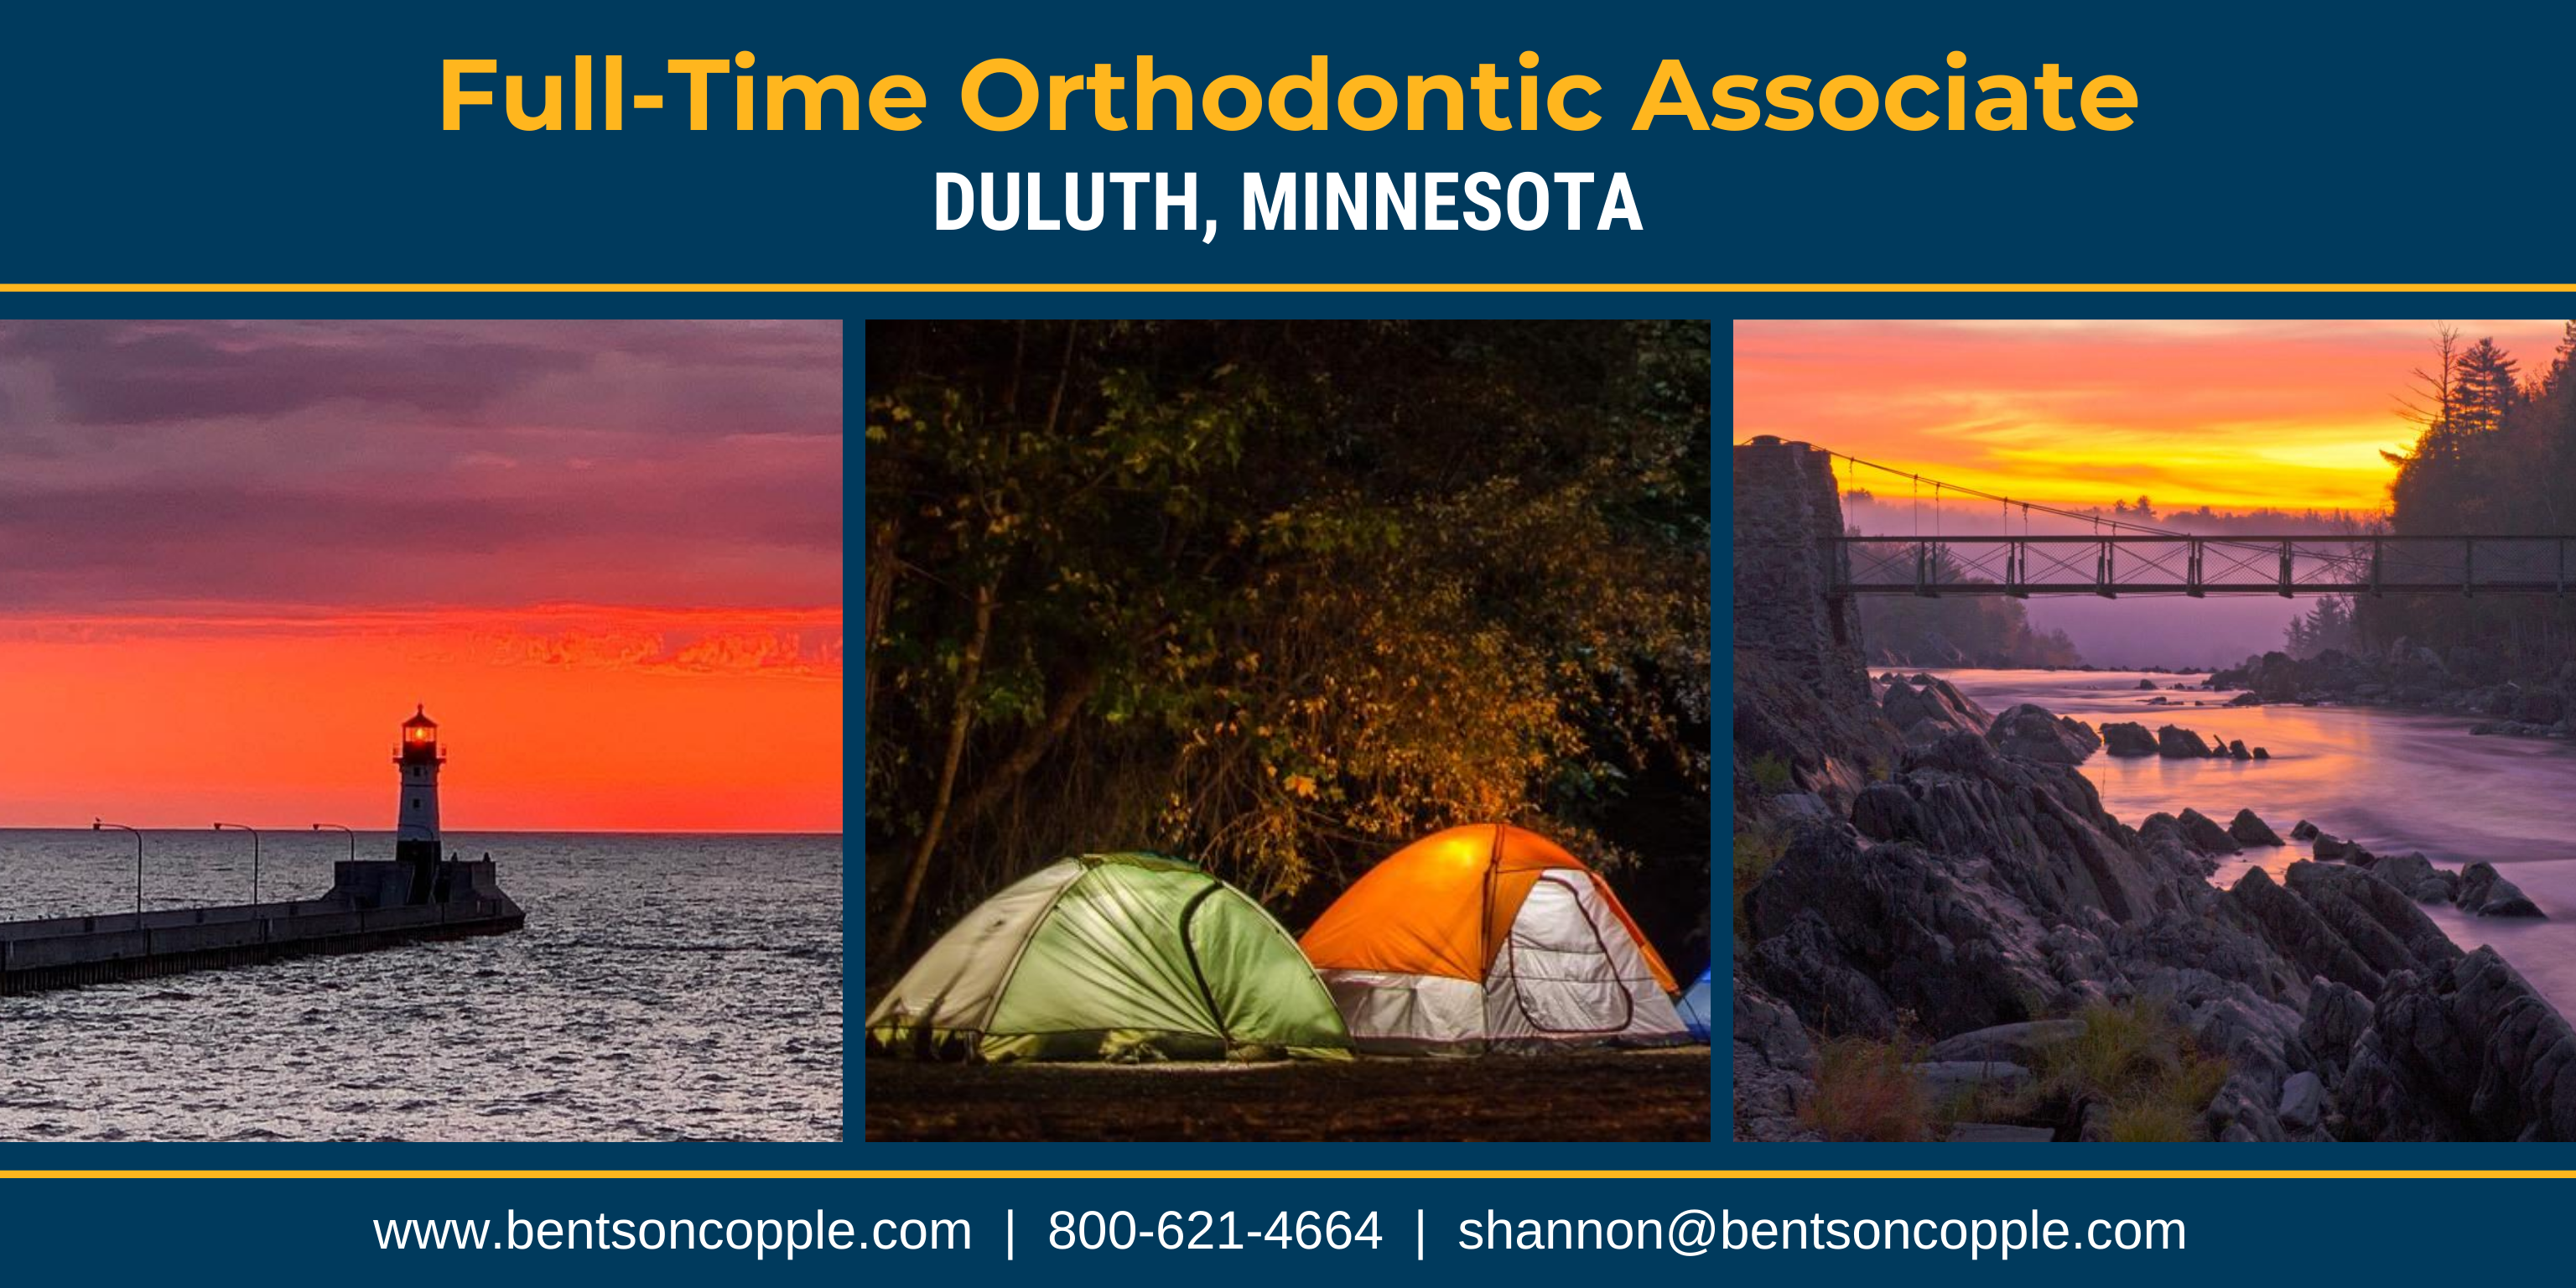 Full-Time Orthodontic Associate - Duluth, Minnesota Blog